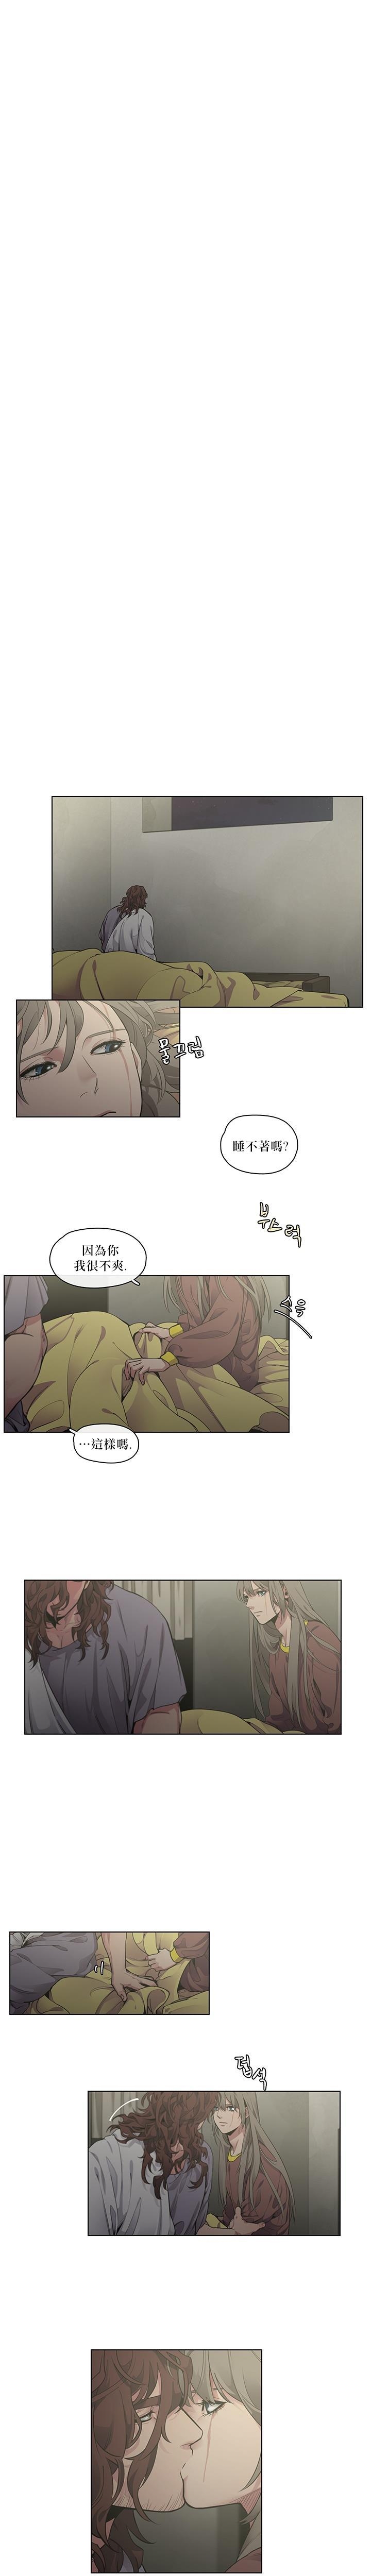 The Warrior and the Deity   勇者与山神 Ch. 2-6+加笔1+加笔2 54